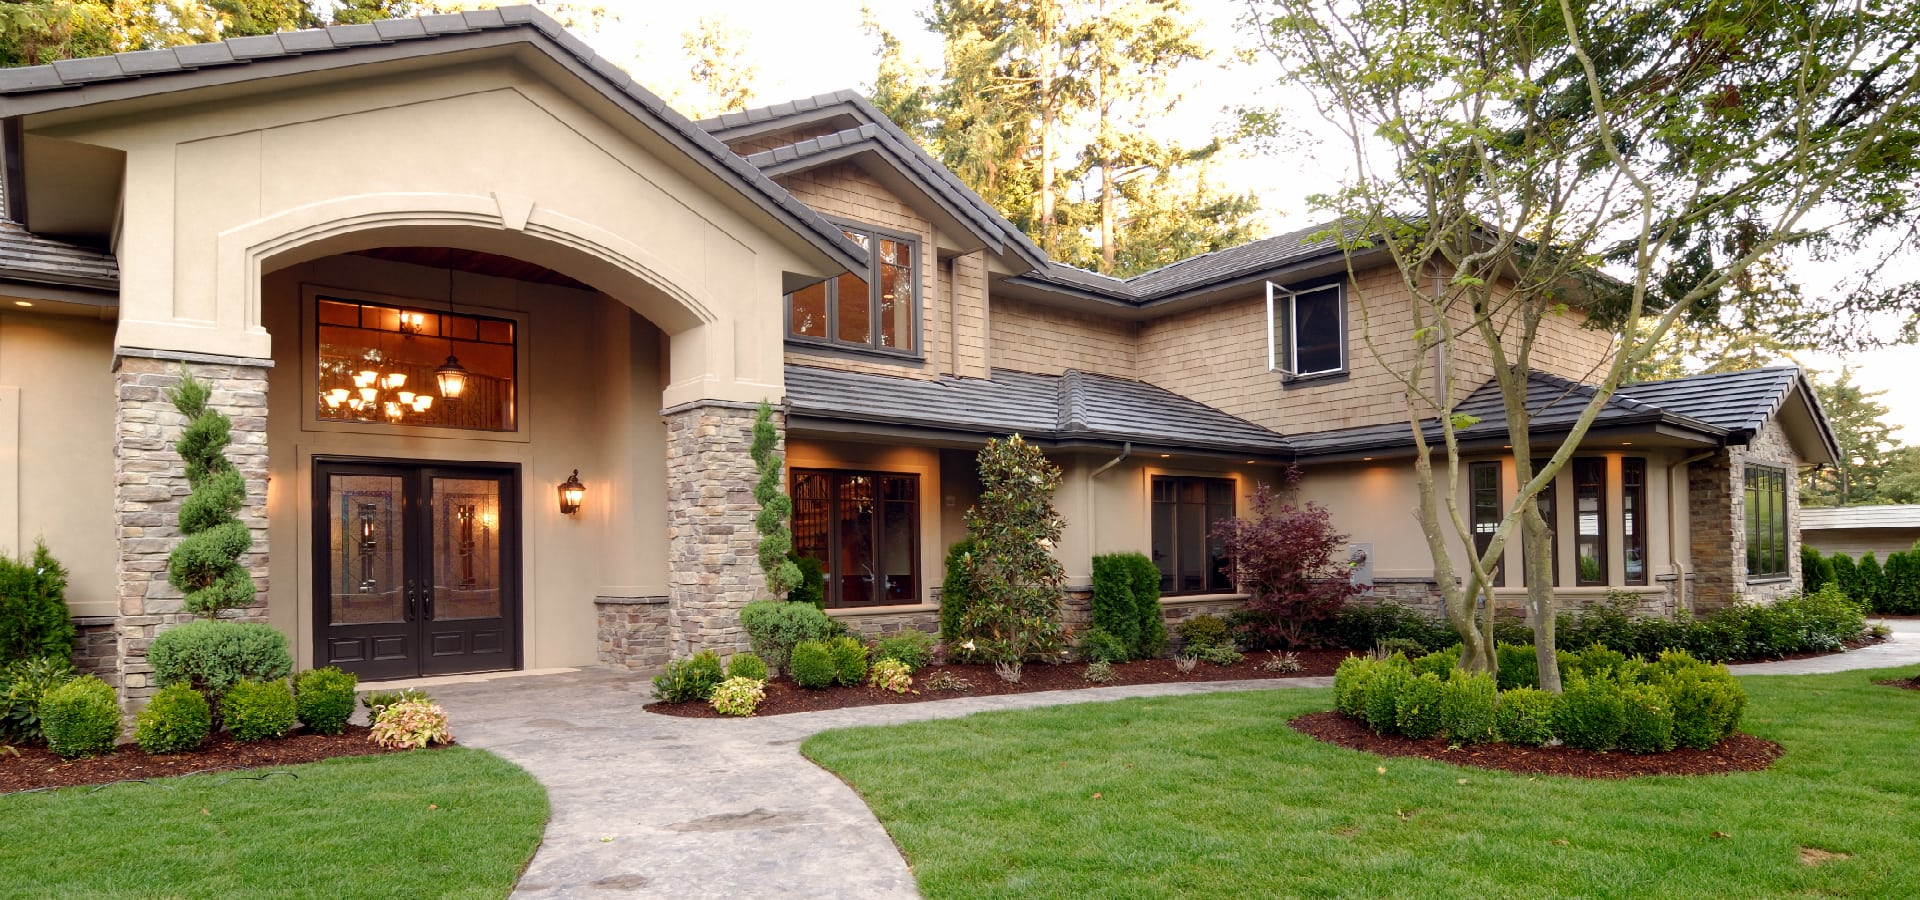 Design Your Dream Home With Custom Exteriors At The Home